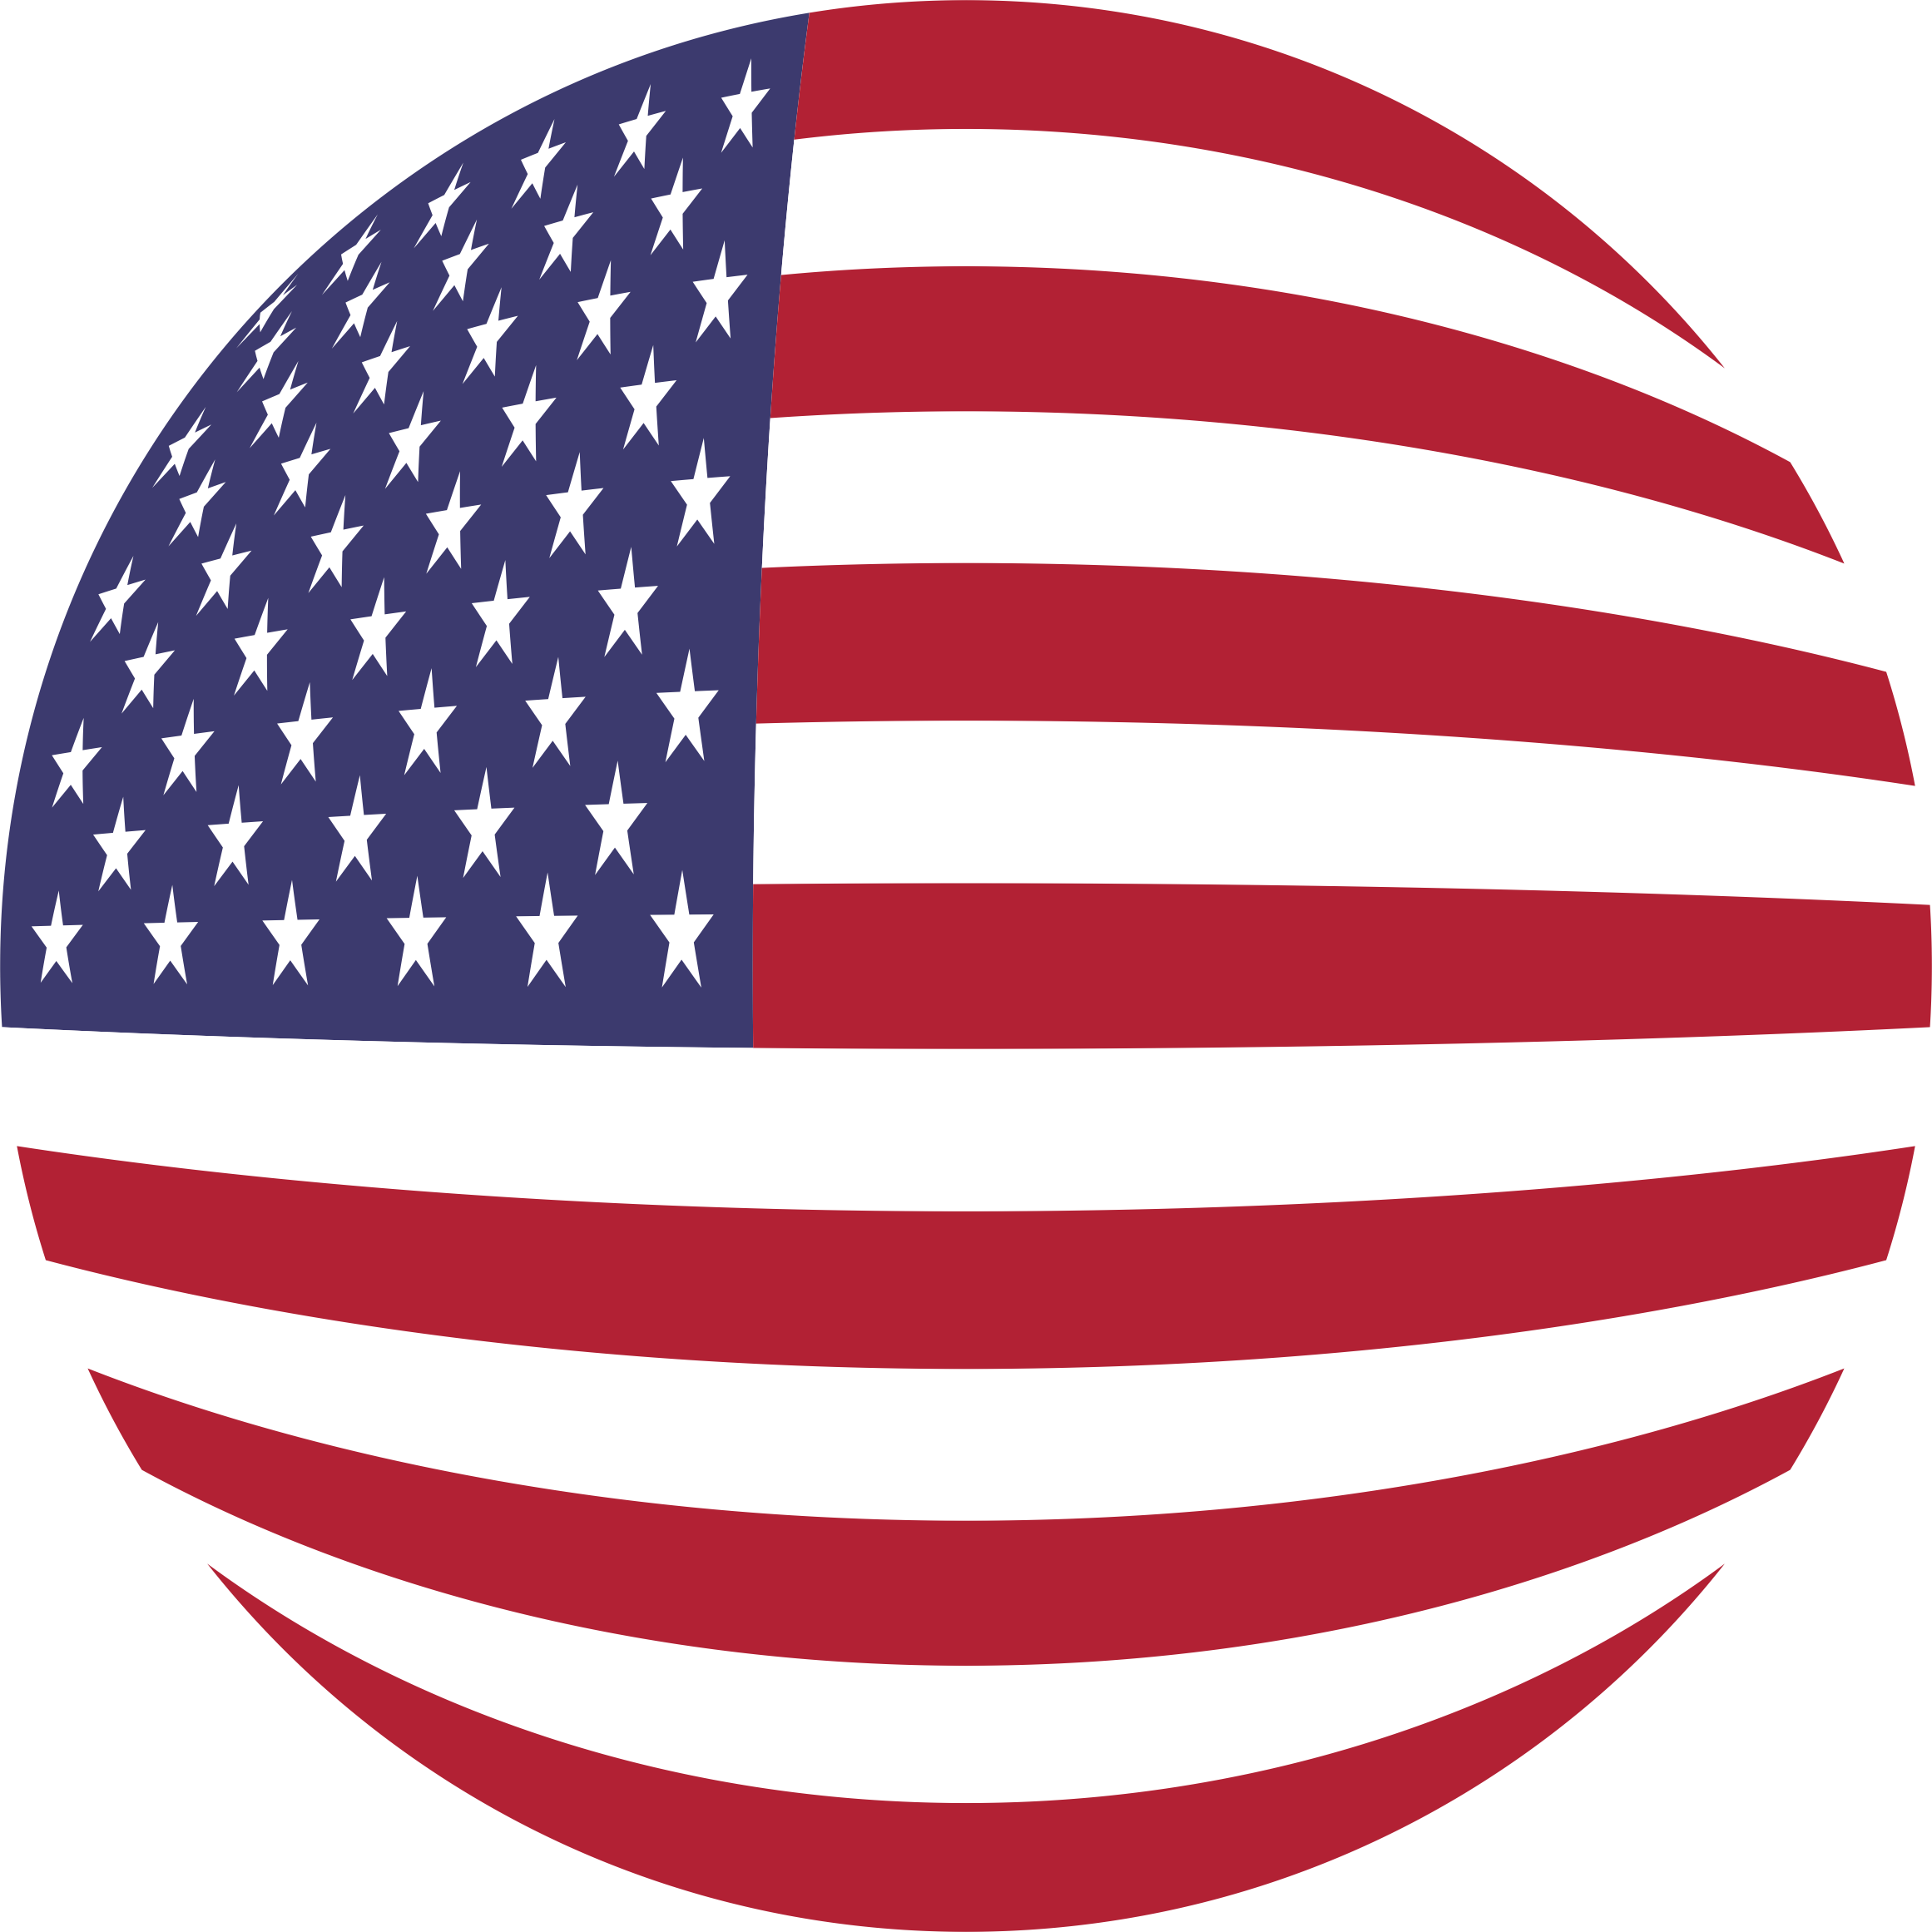 clipart library Orb big image png. American clipart american flag.